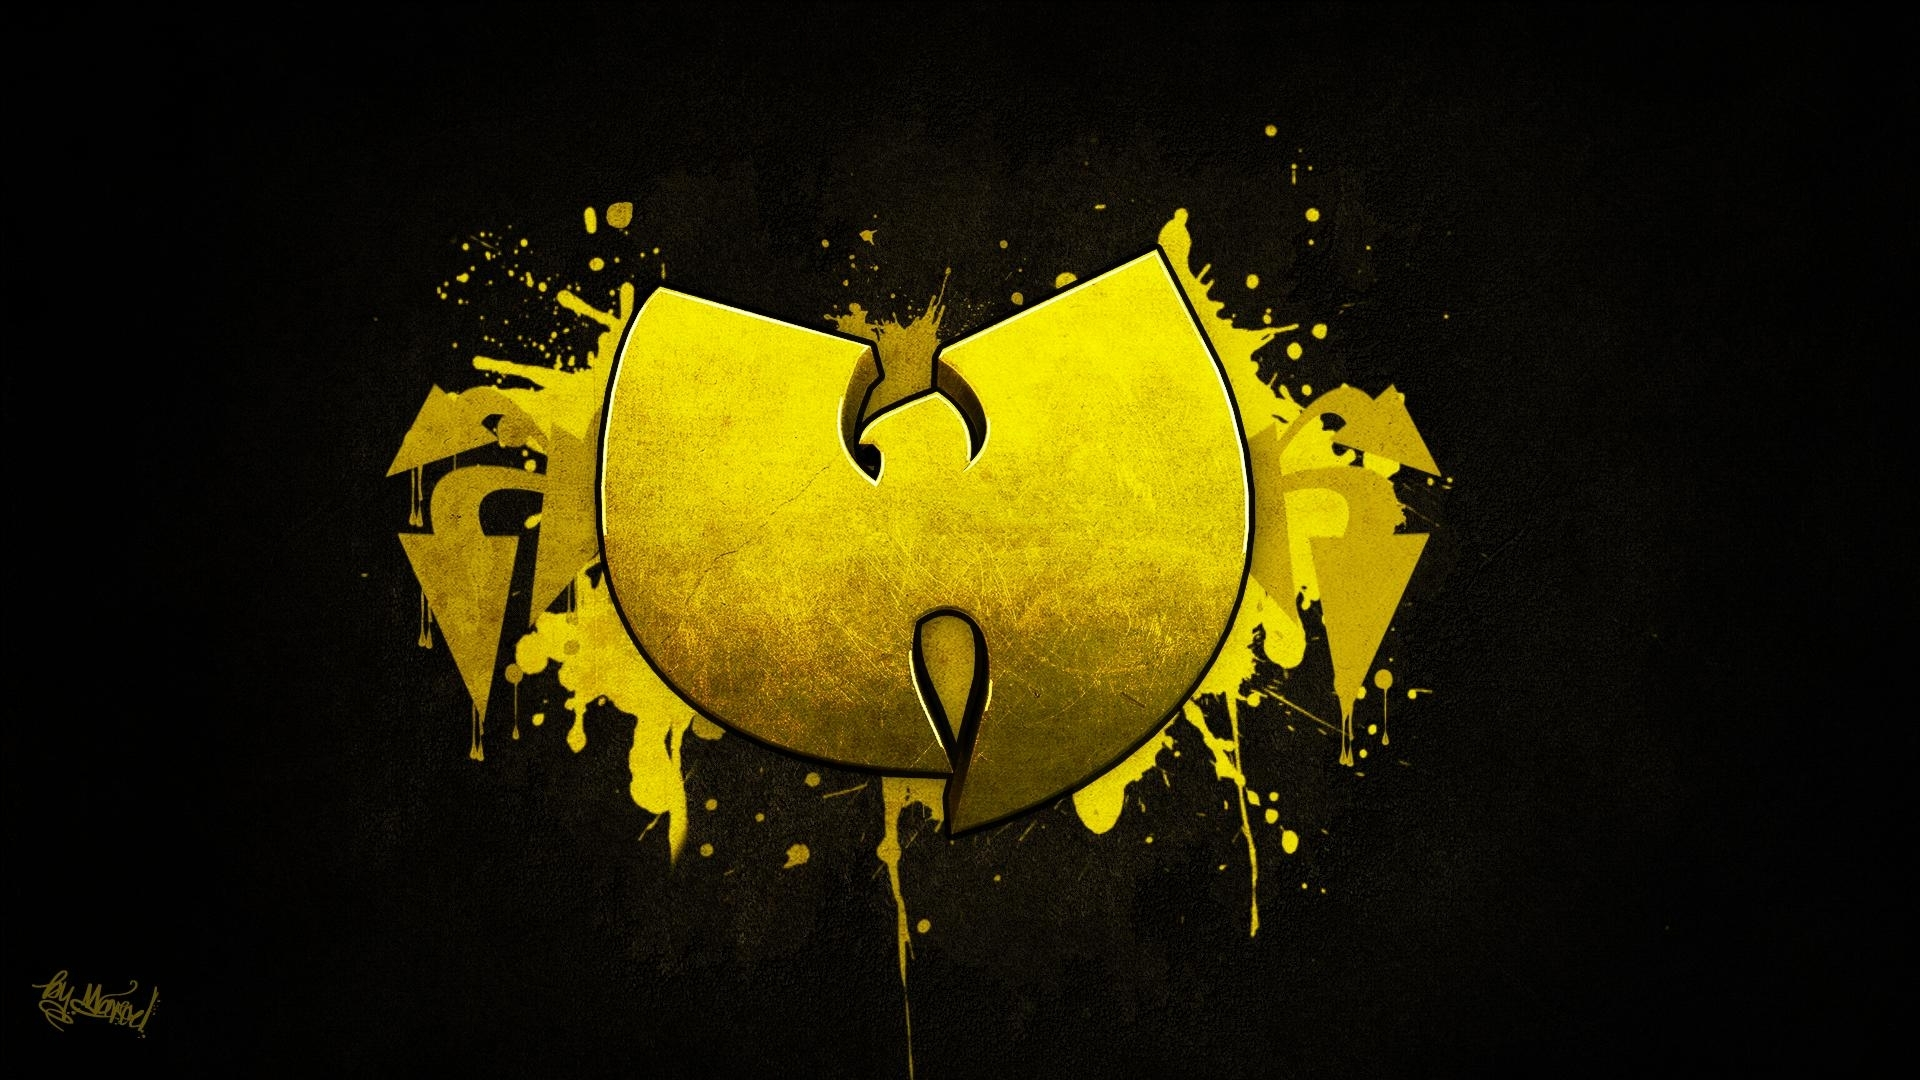 wu-tang clan performing 36 chambers | the sights & sounds